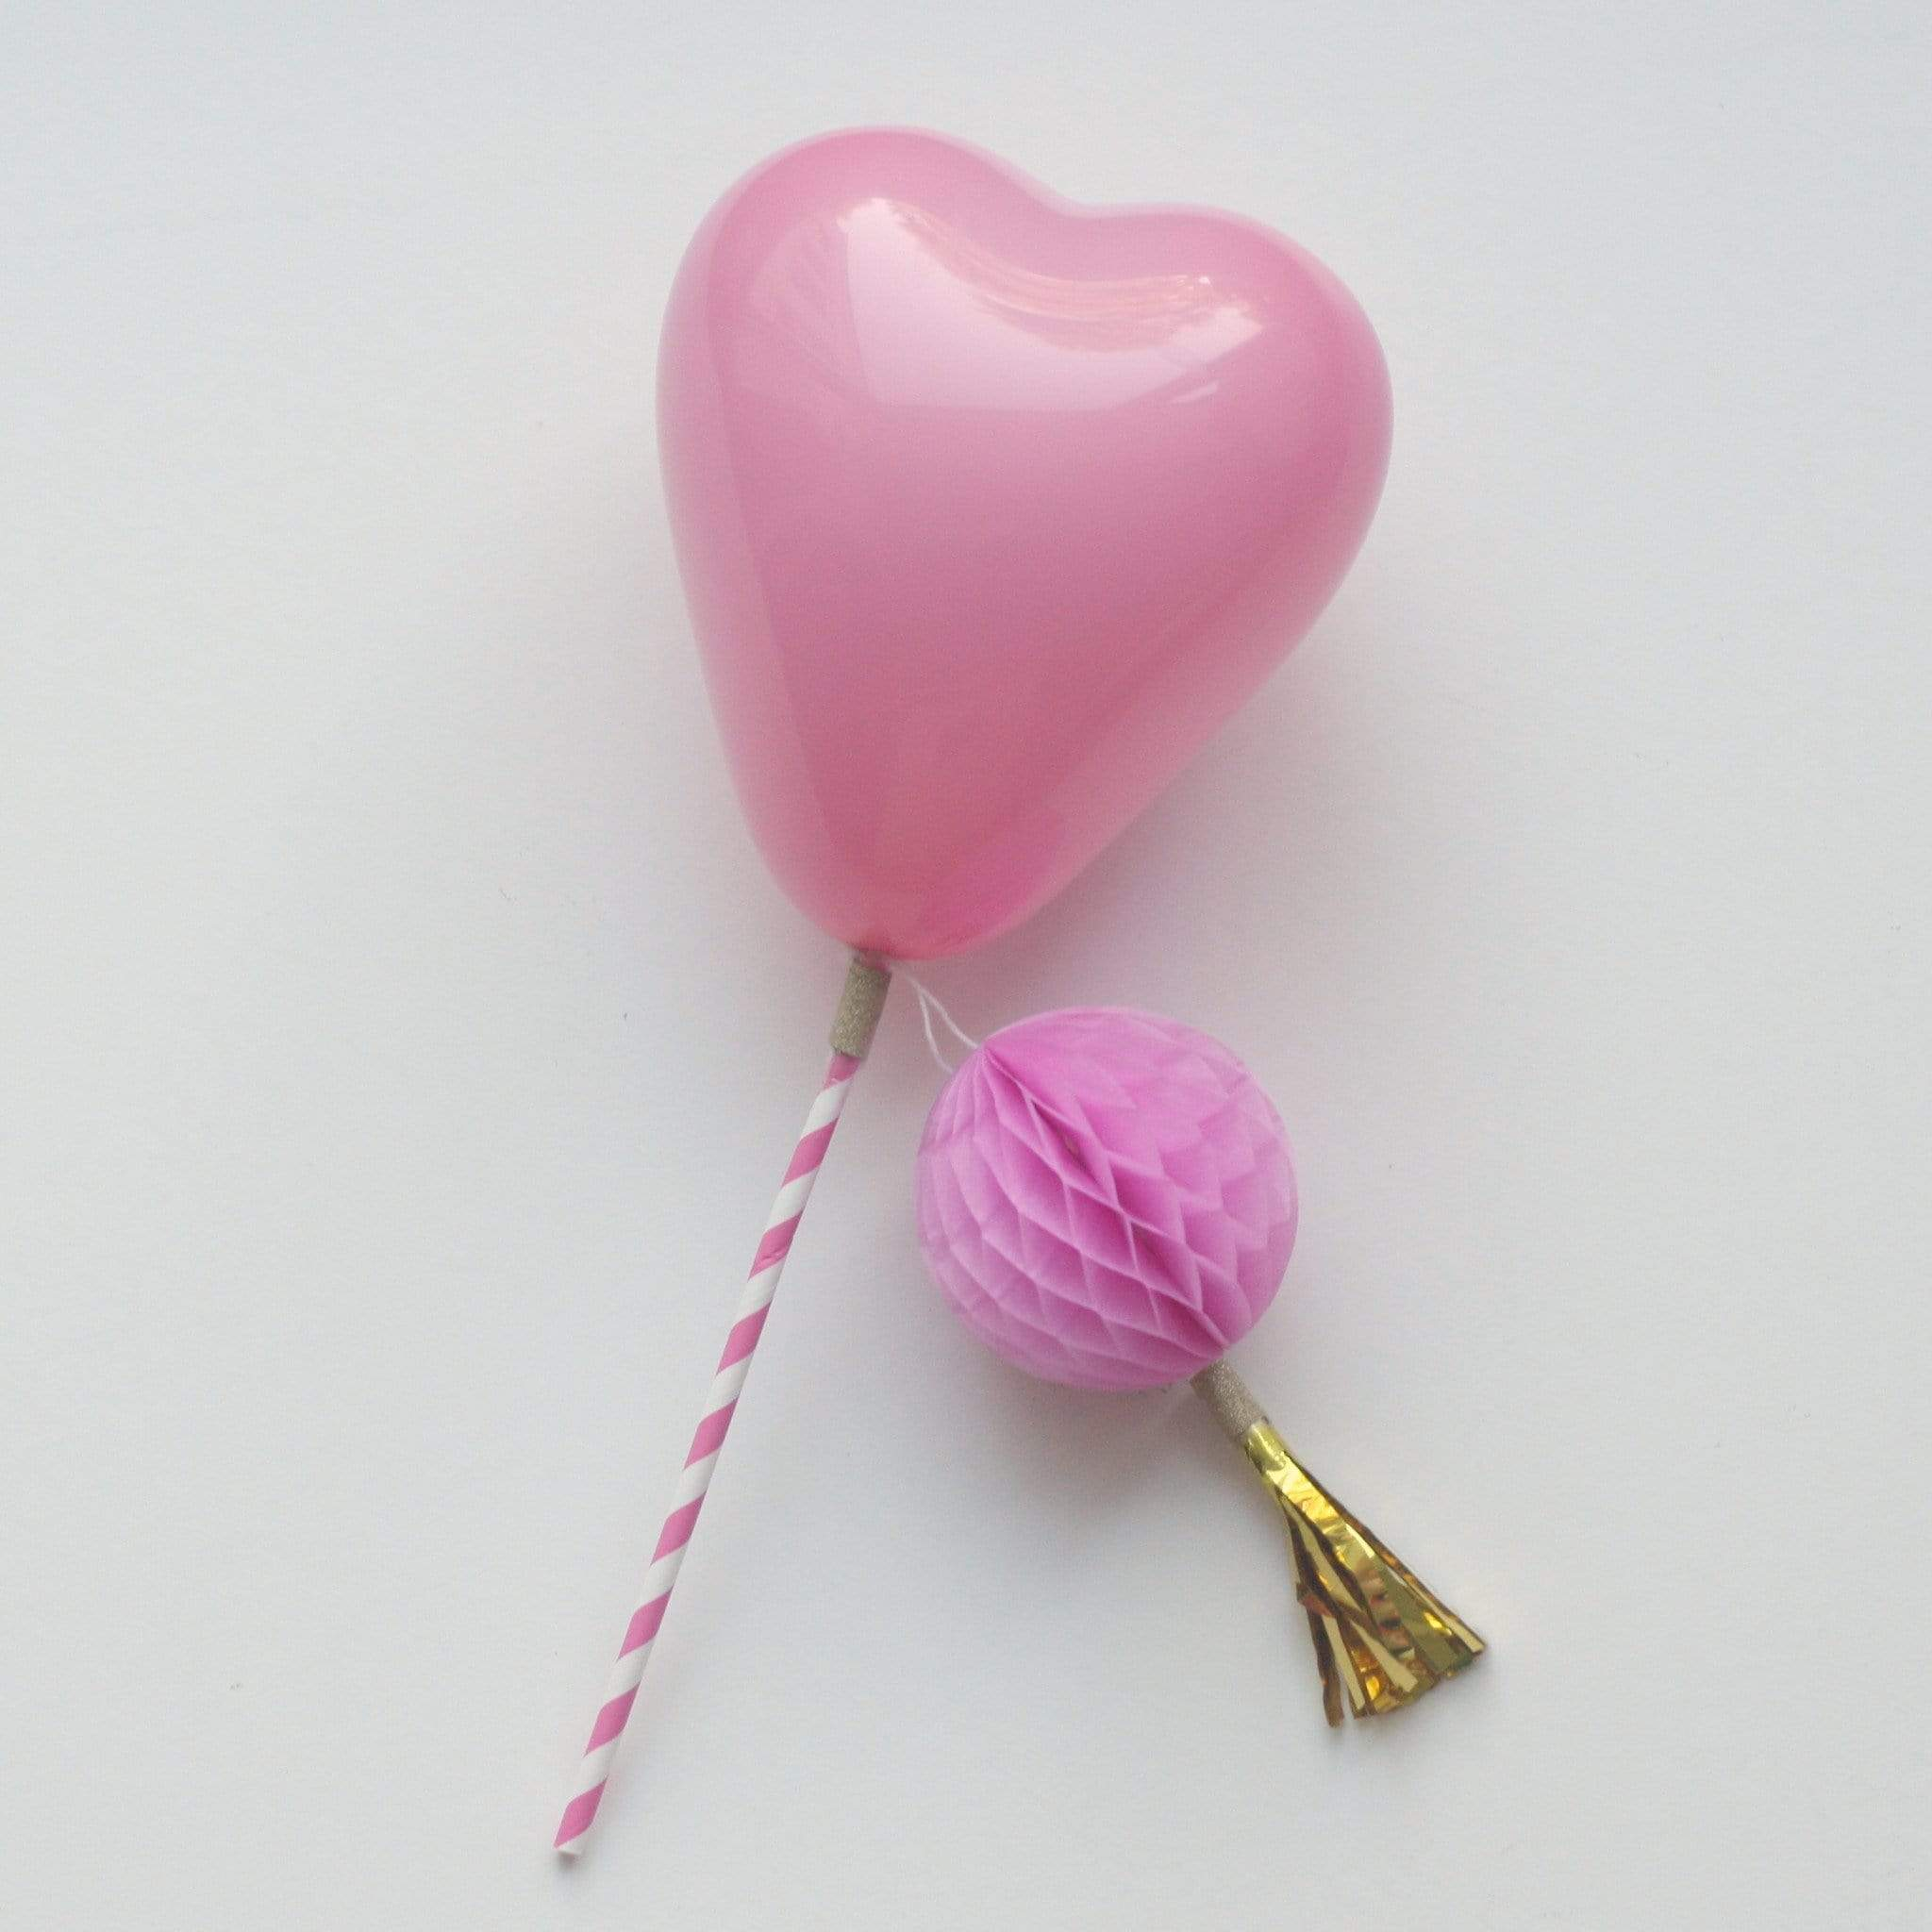 Tiny Heart Balloons | Little Latex Heart Shaped Balloons